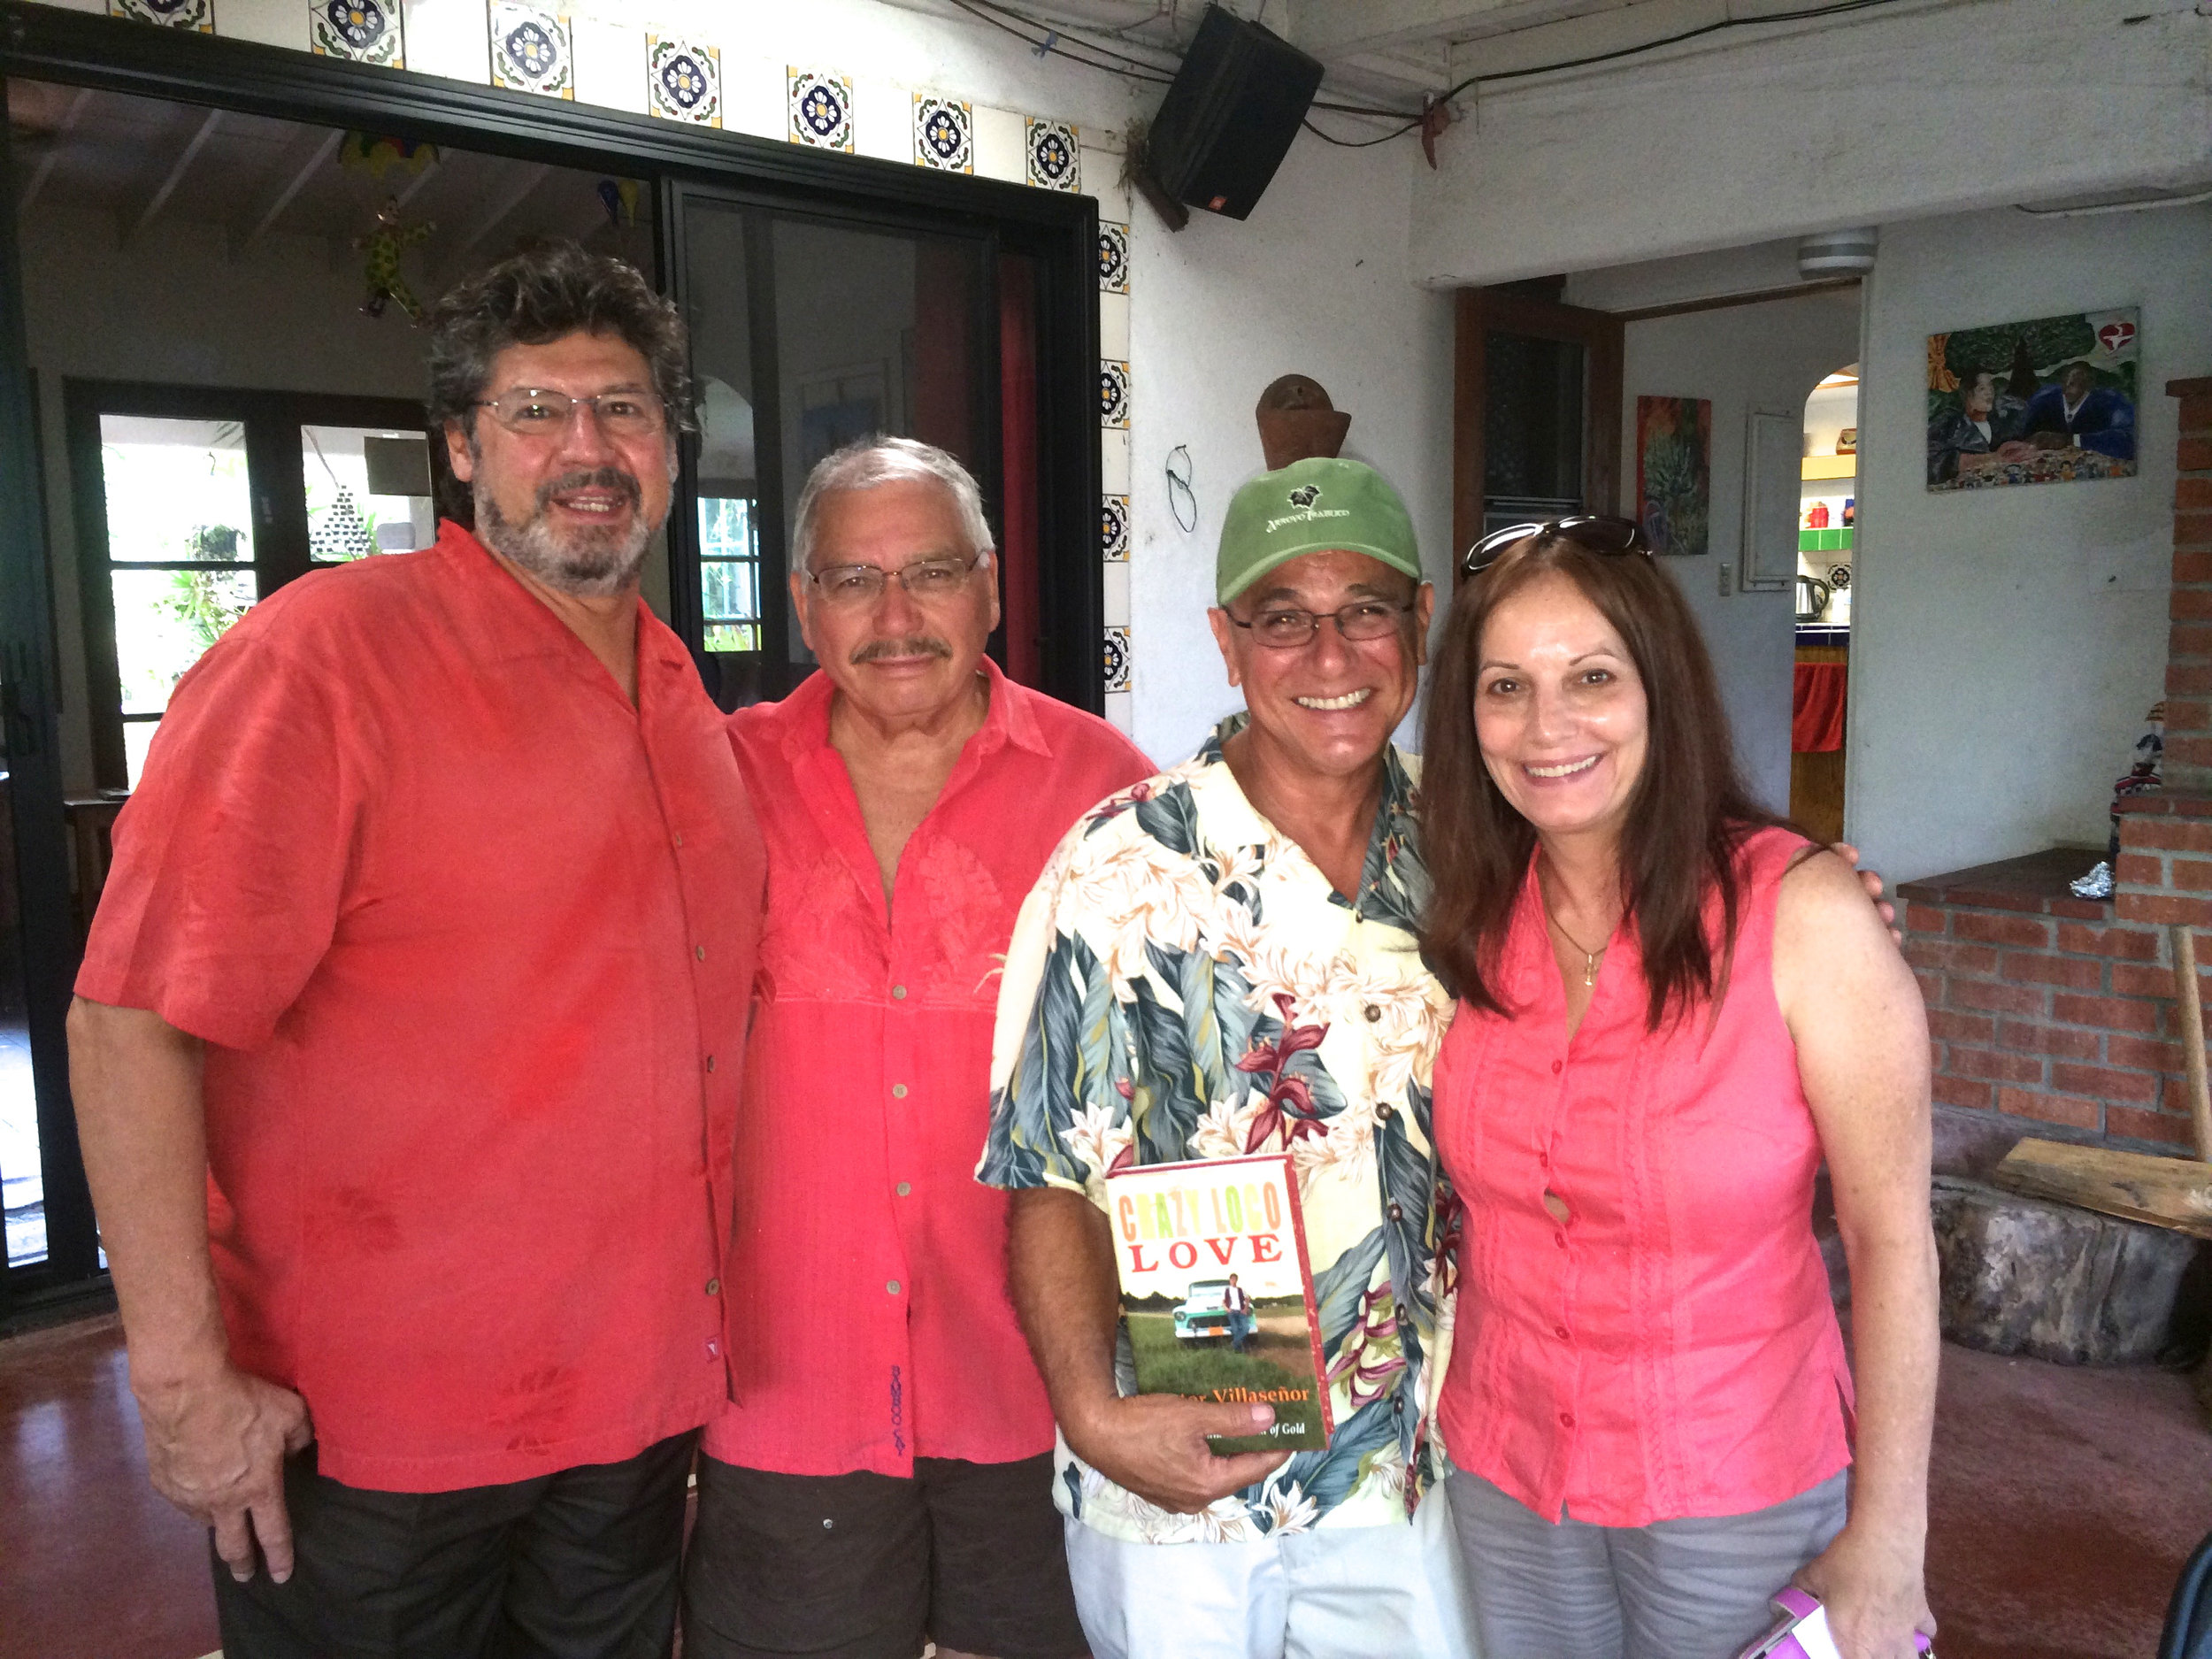 Me (second from right) and Victor Villaseñor standing next to me.